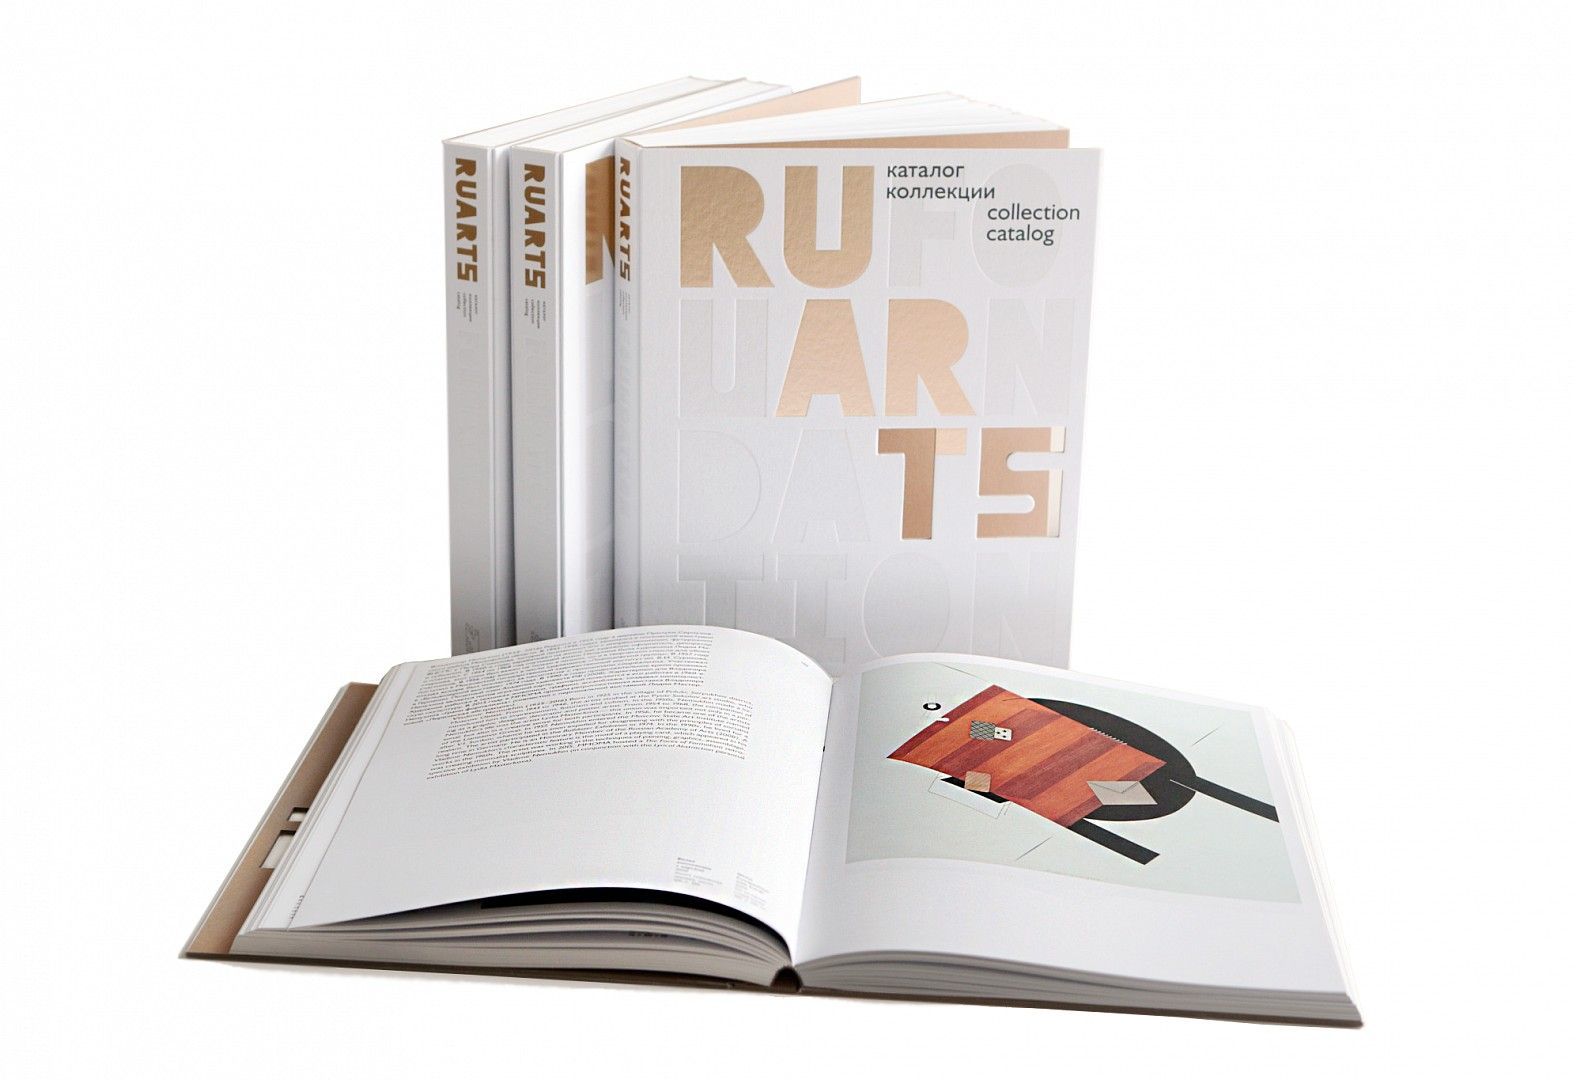 Ruarts Foundation Collection catalog